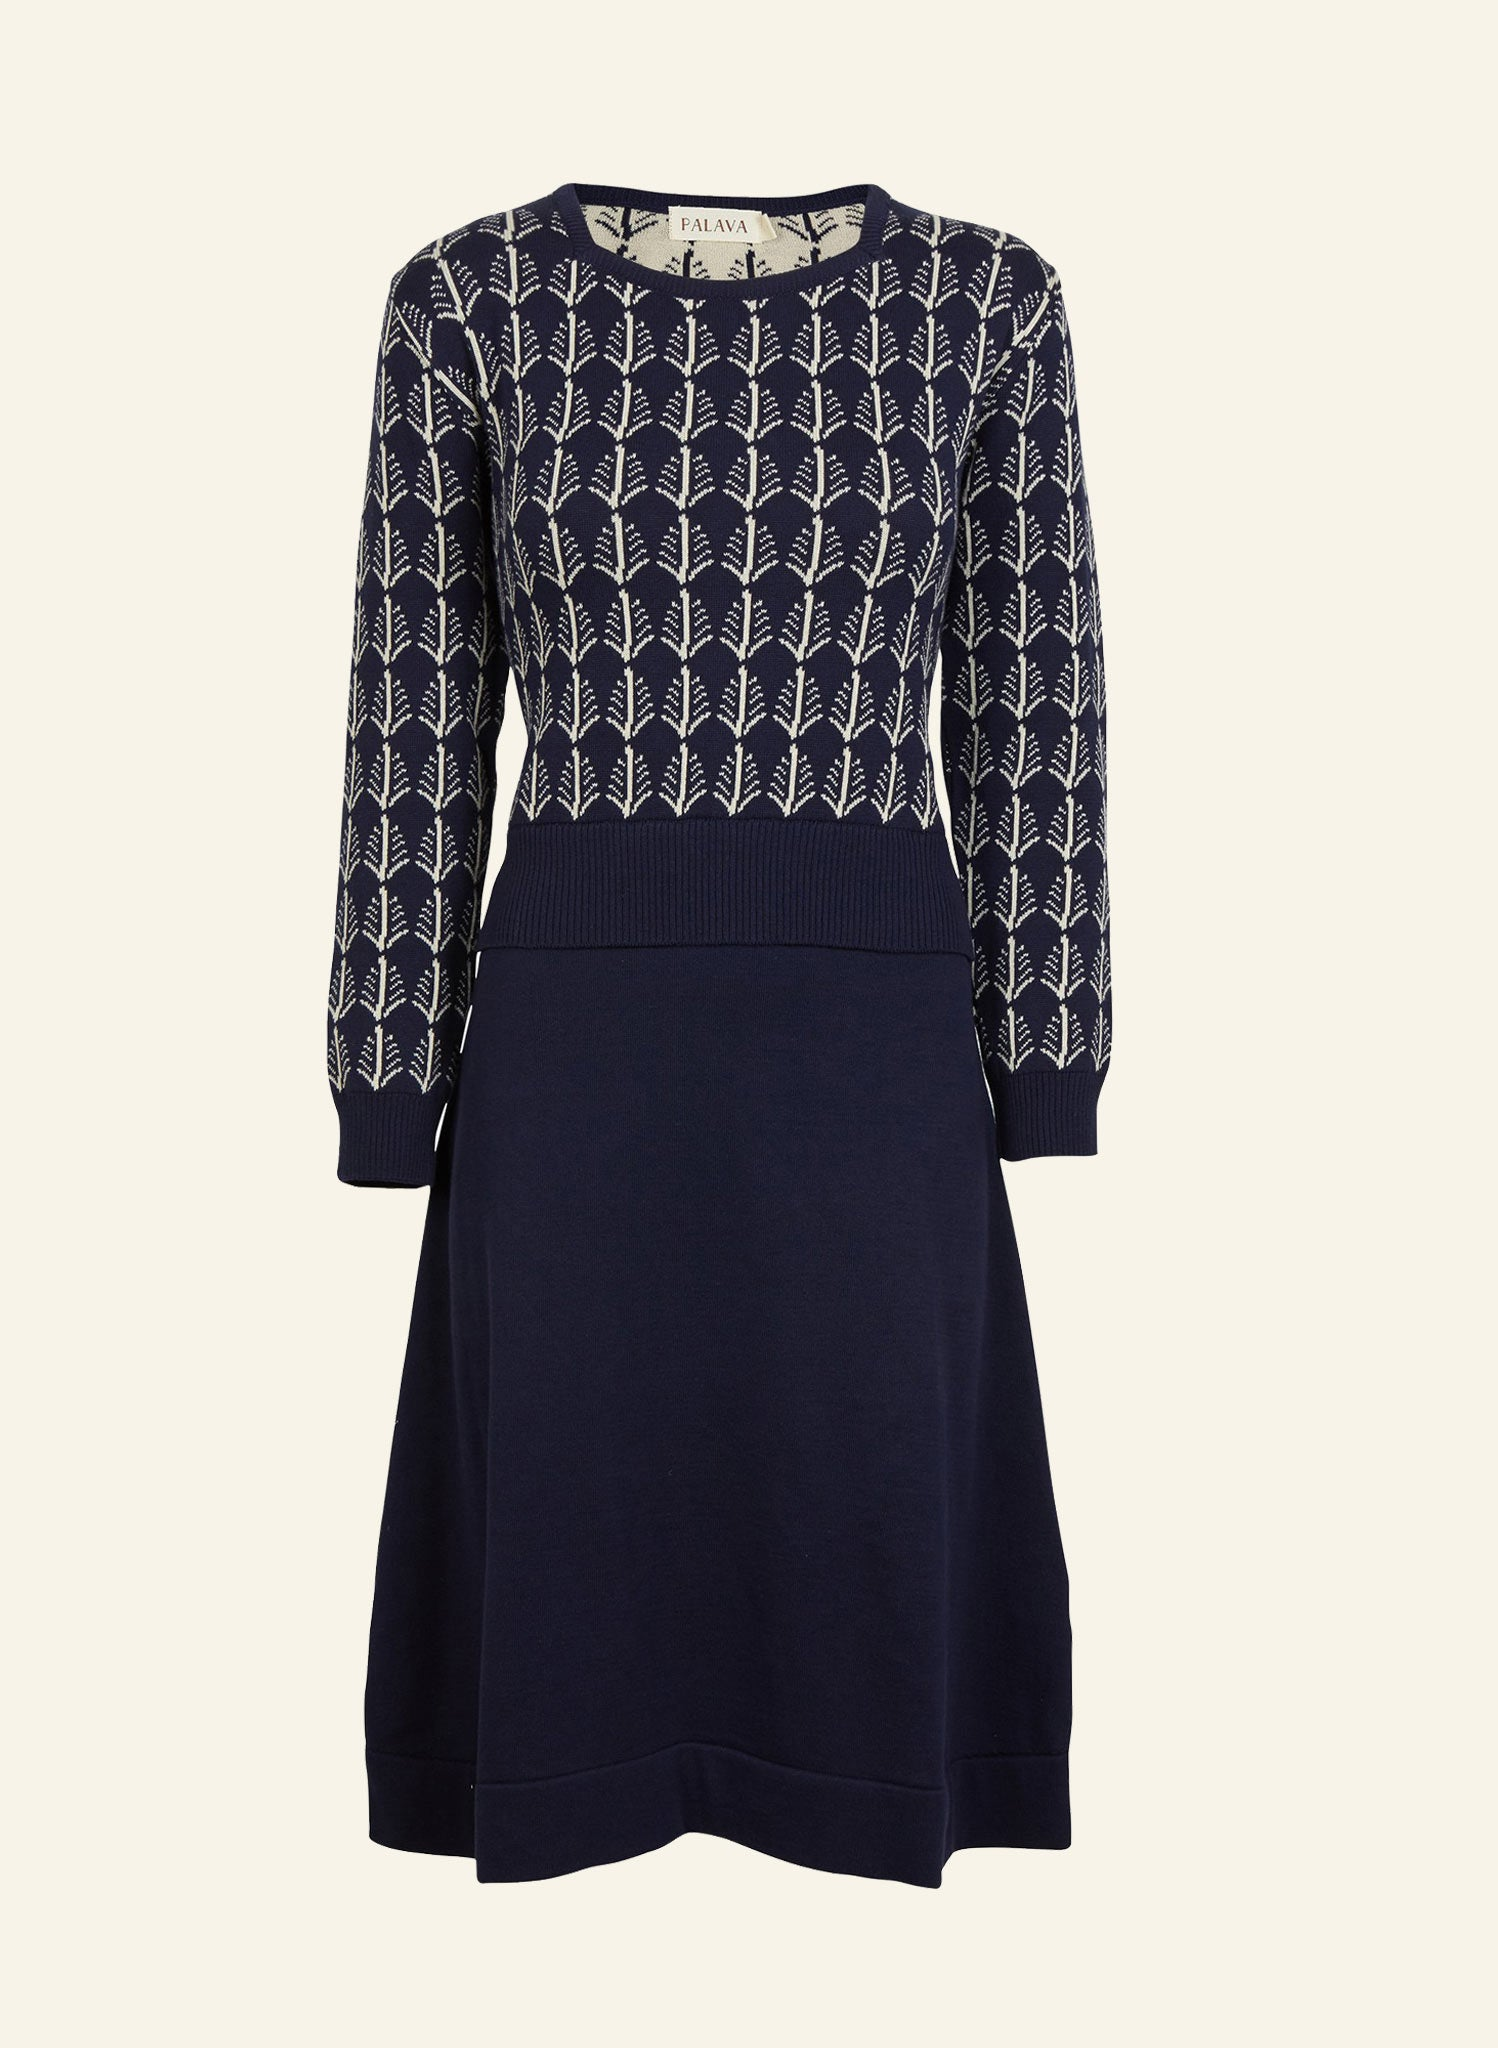 Otti Knitted Dress - Navy/Cream Feathers